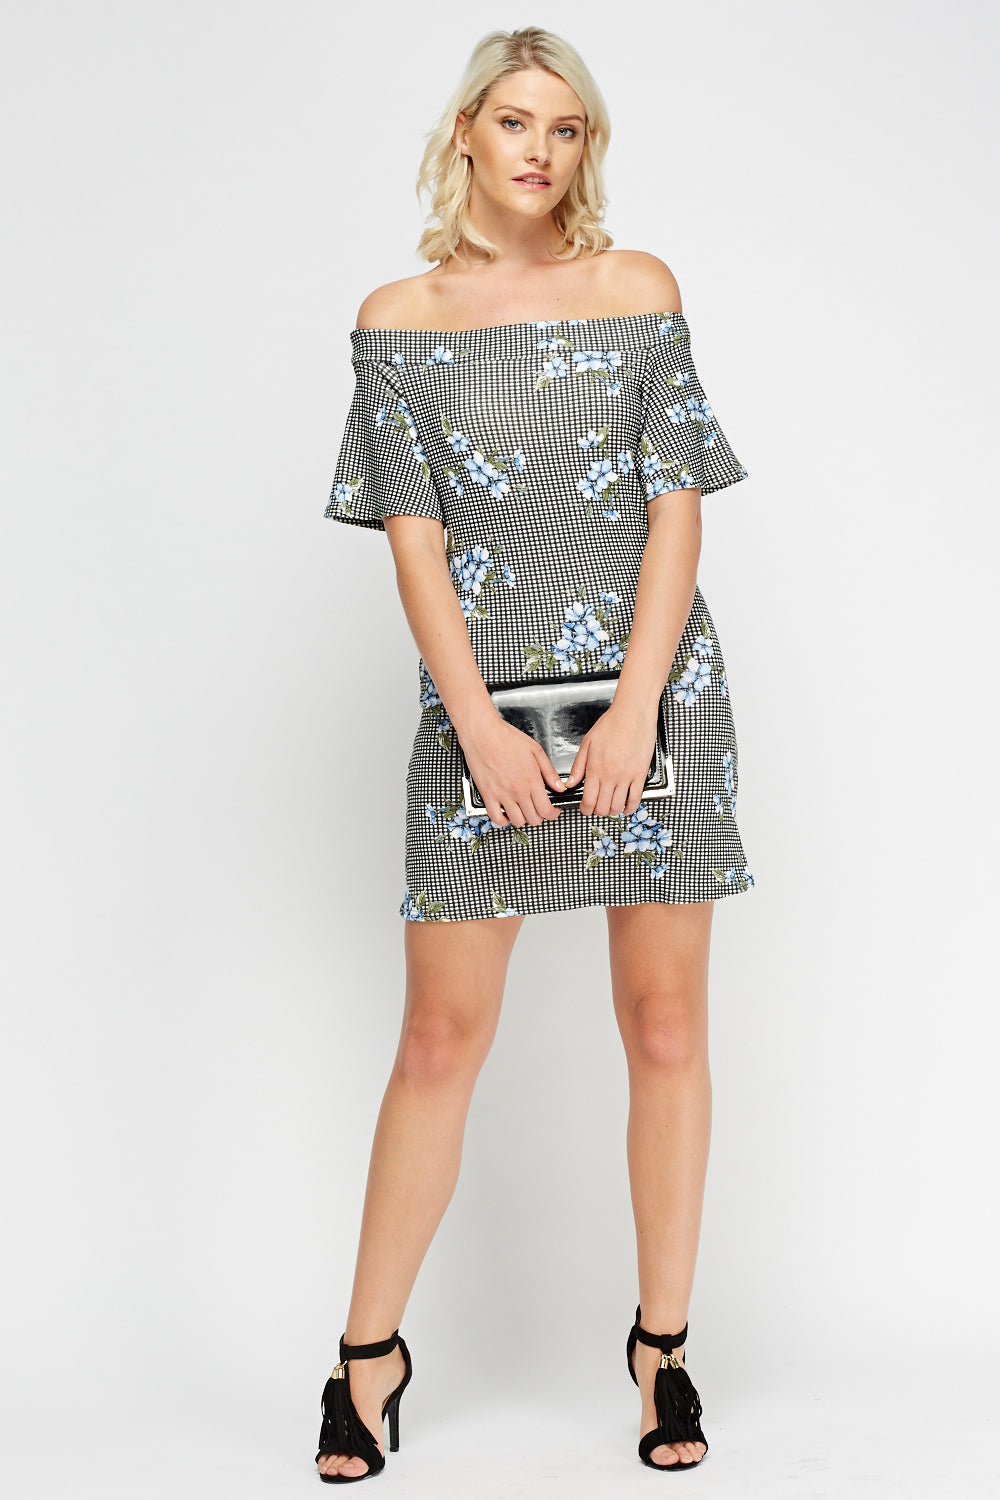 Vestido estampado off shoulder - MiTiendaSecreta